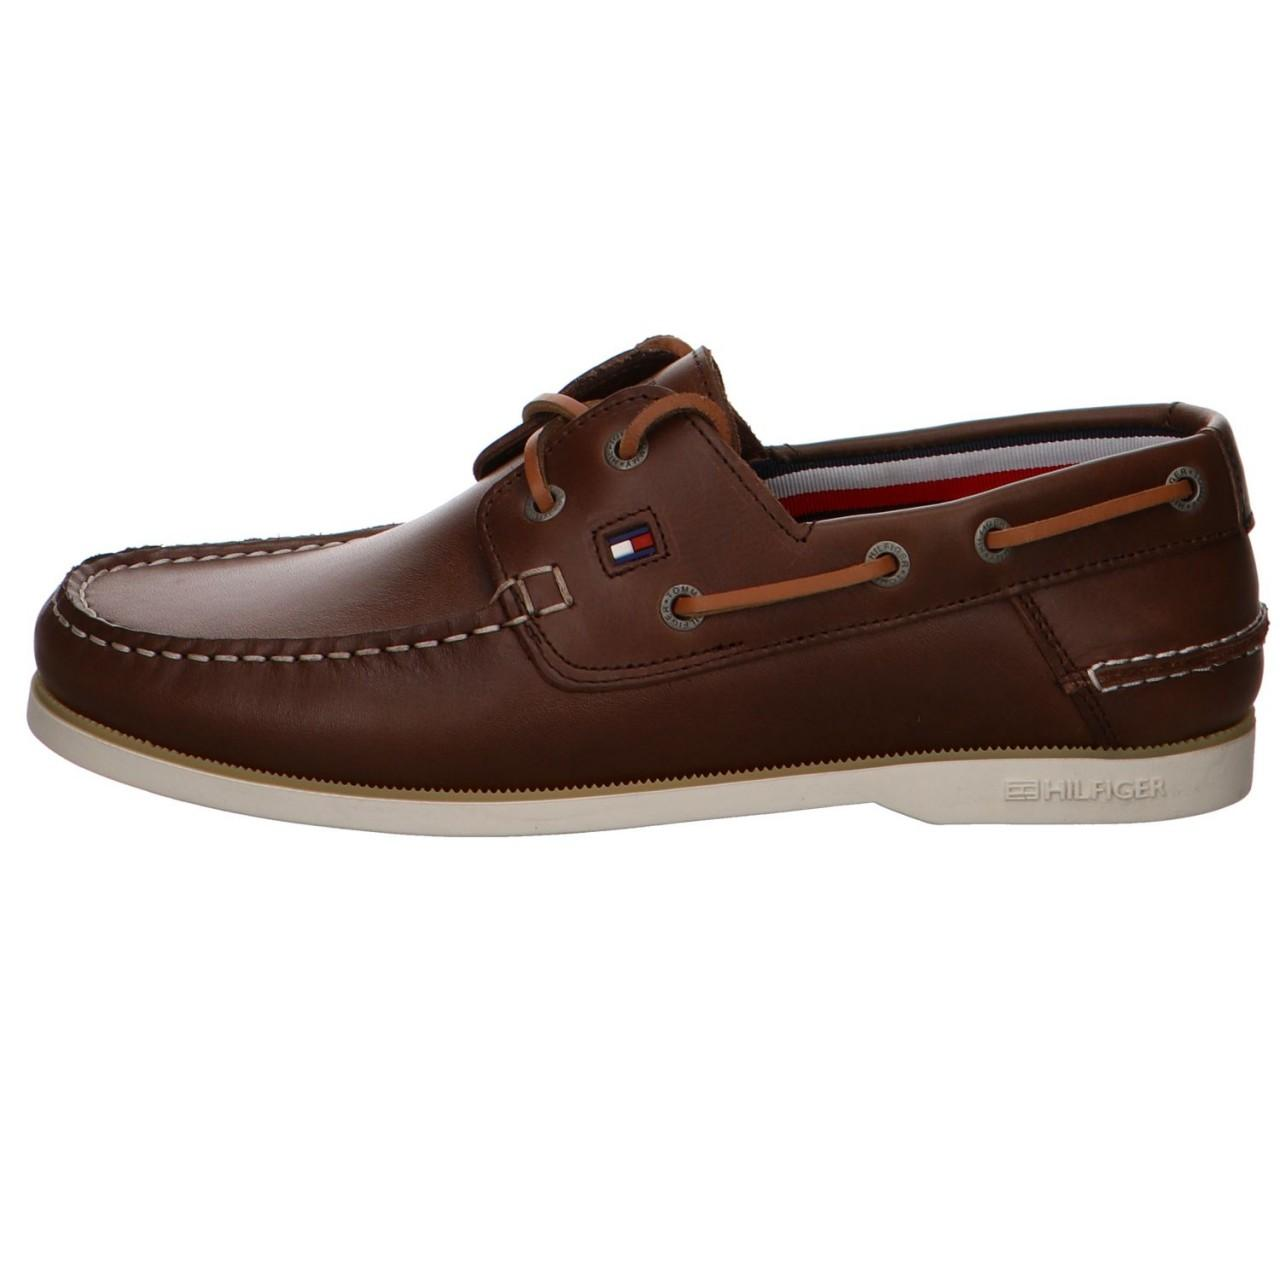 285cd1150b38bb Tommy Hilfiger - Formal Shoes Brown for Men - Lyst. View fullscreen